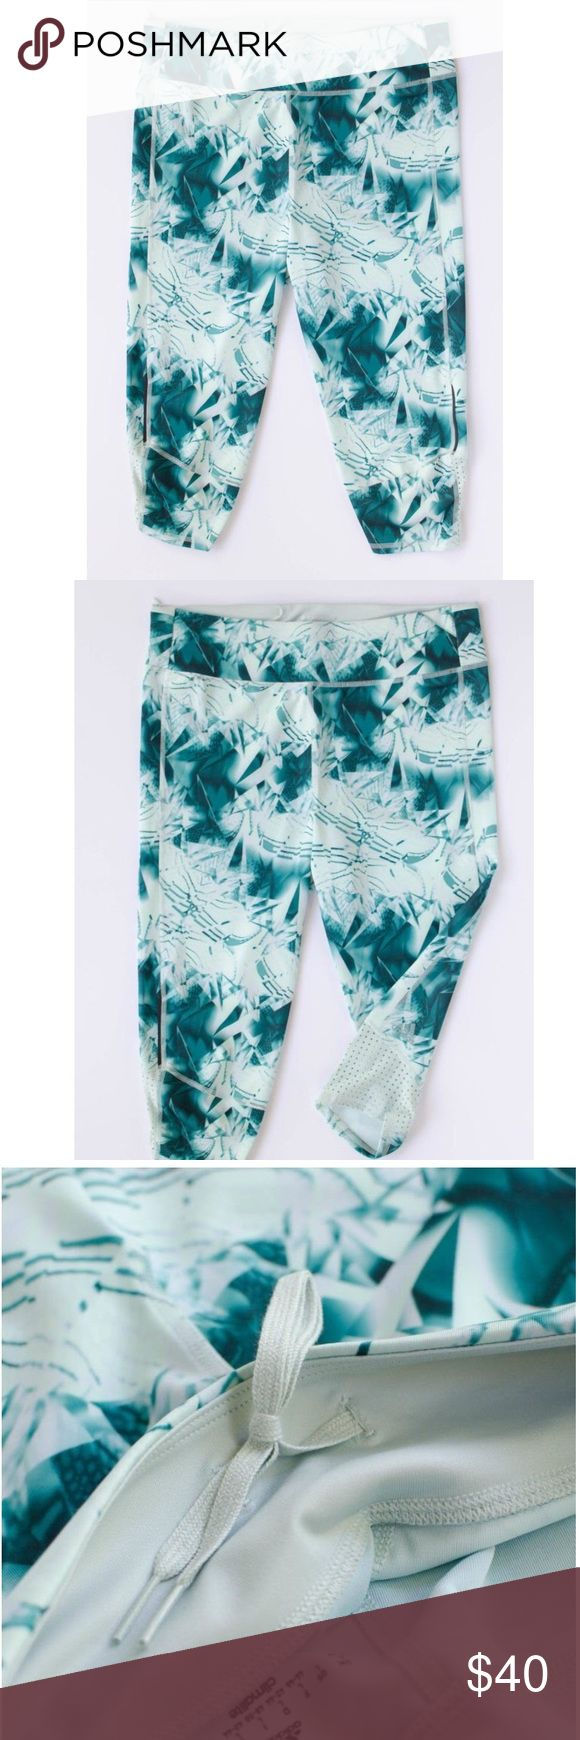 Adidas Supernova three quarters tights NWT! This fabric is very lightweight, breathable, and made with their climalite fabric so it wicks away sweat. The lower back of the pant has a mesh detail for extra breathability, too. Adidas Pants Ankle & Cropped